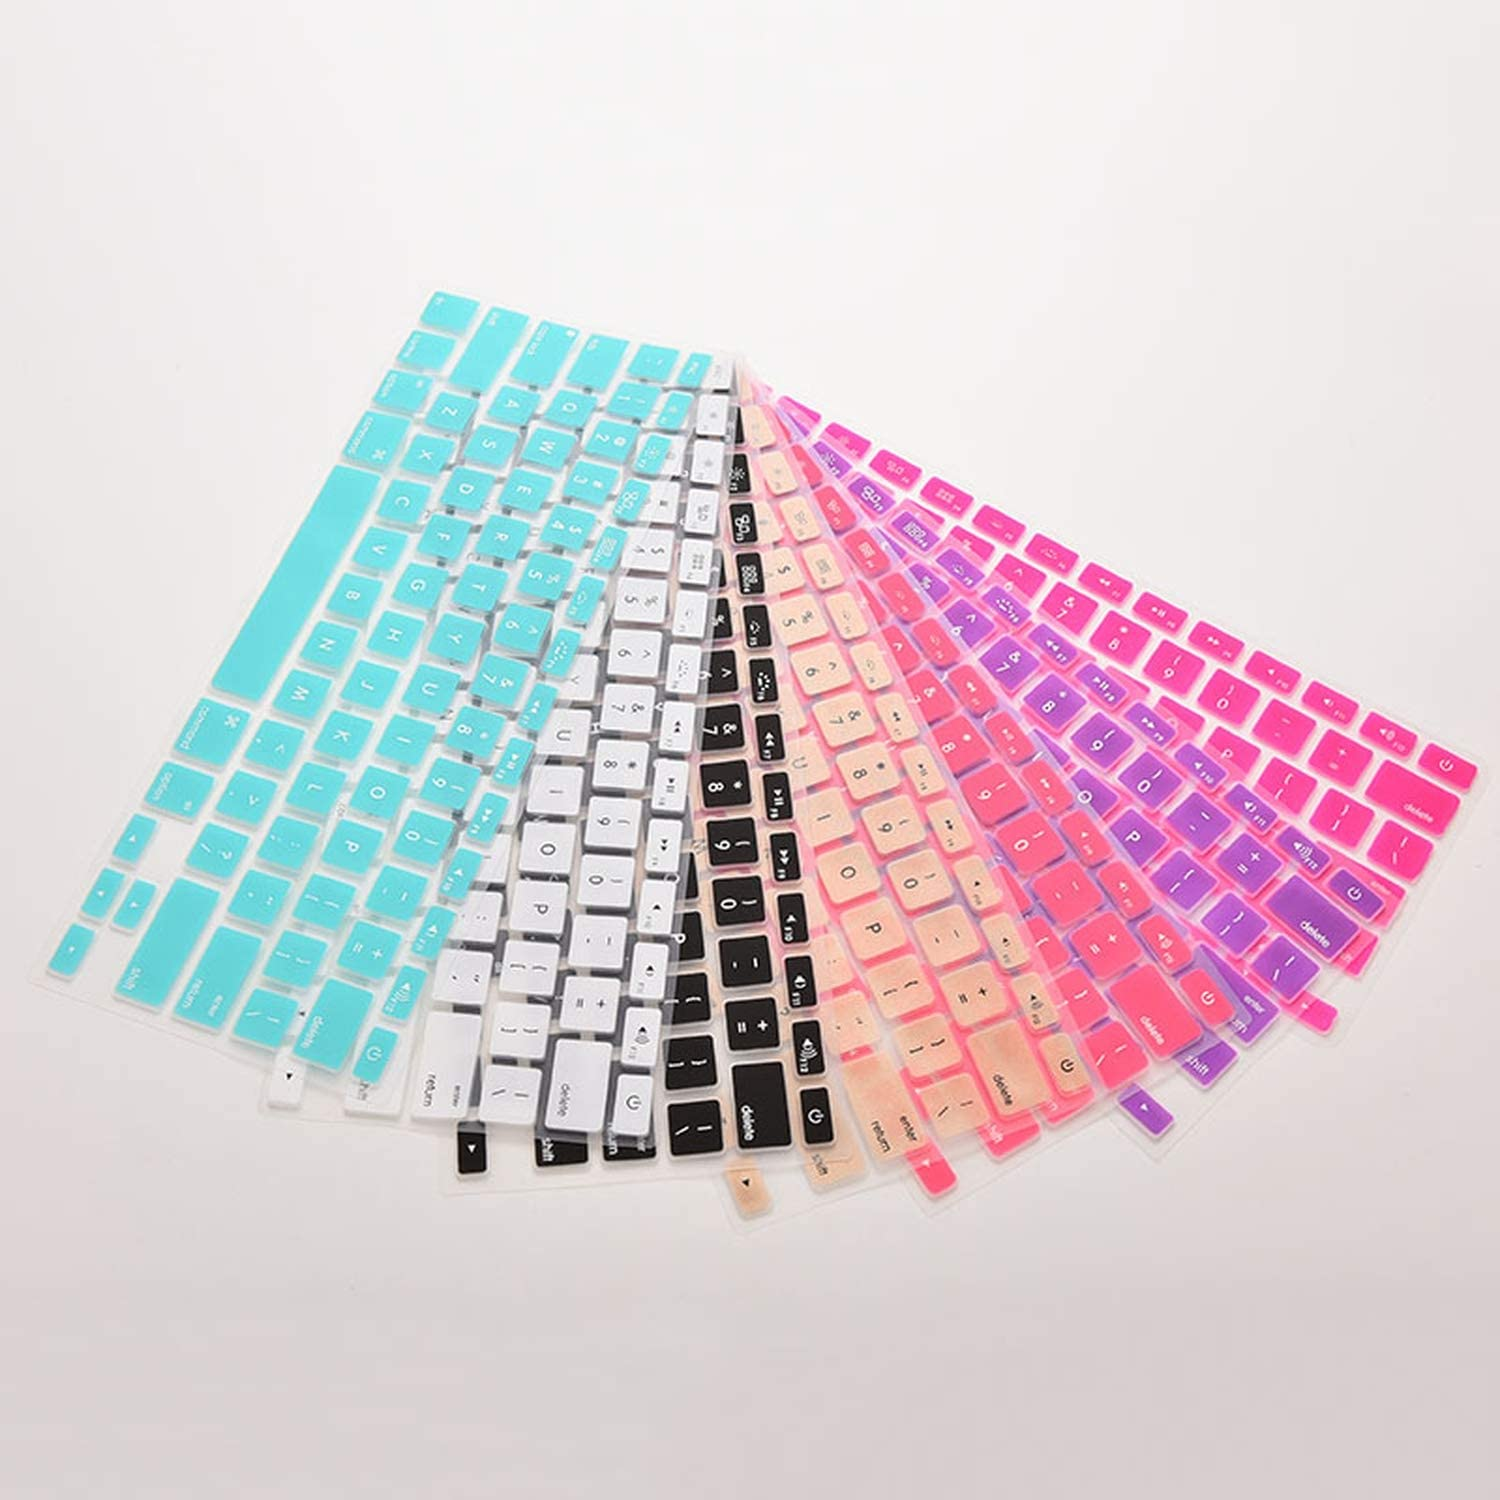 7 Candy Colors Silicone Keyboard Cover Sticker for MacBook Air 13 Pro 13 15 17 Protector Sticker Film-Pink